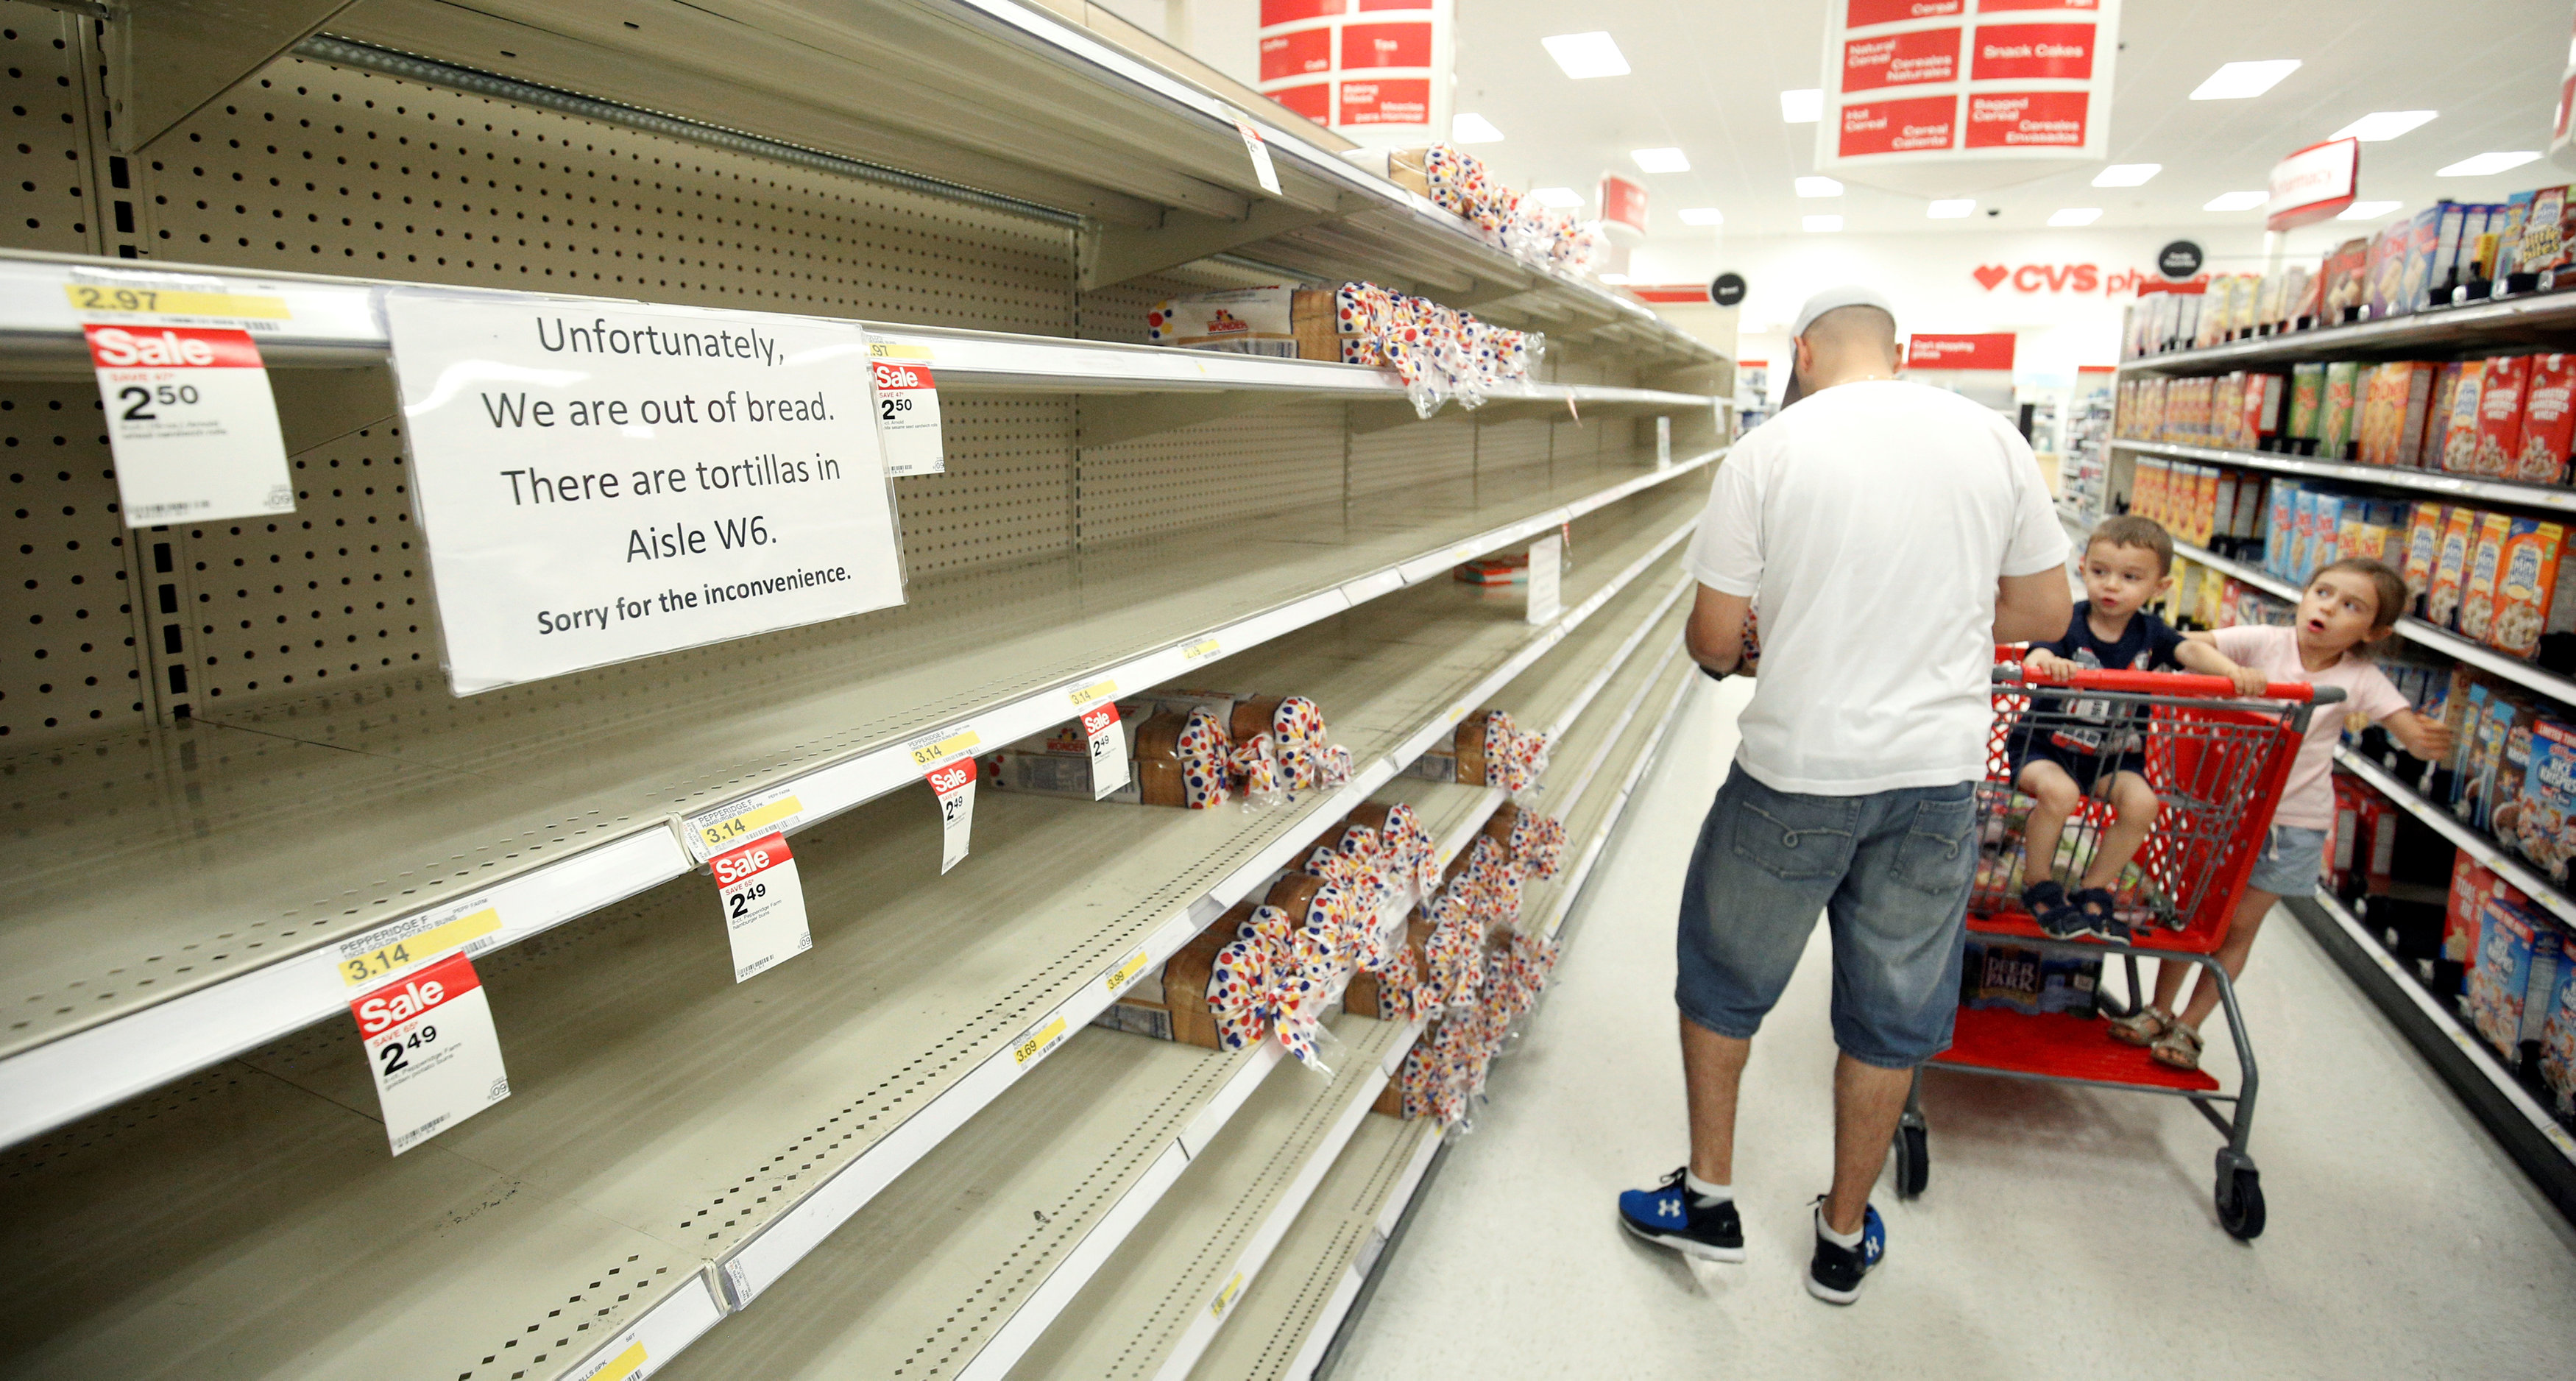 Shoppers encounter empty bread shelves ahead of the arrival of Hurricane Irma at a supermarket in Kissimmee, Florida, U.S. September 8, 2017. REUTERS/Gregg Newton